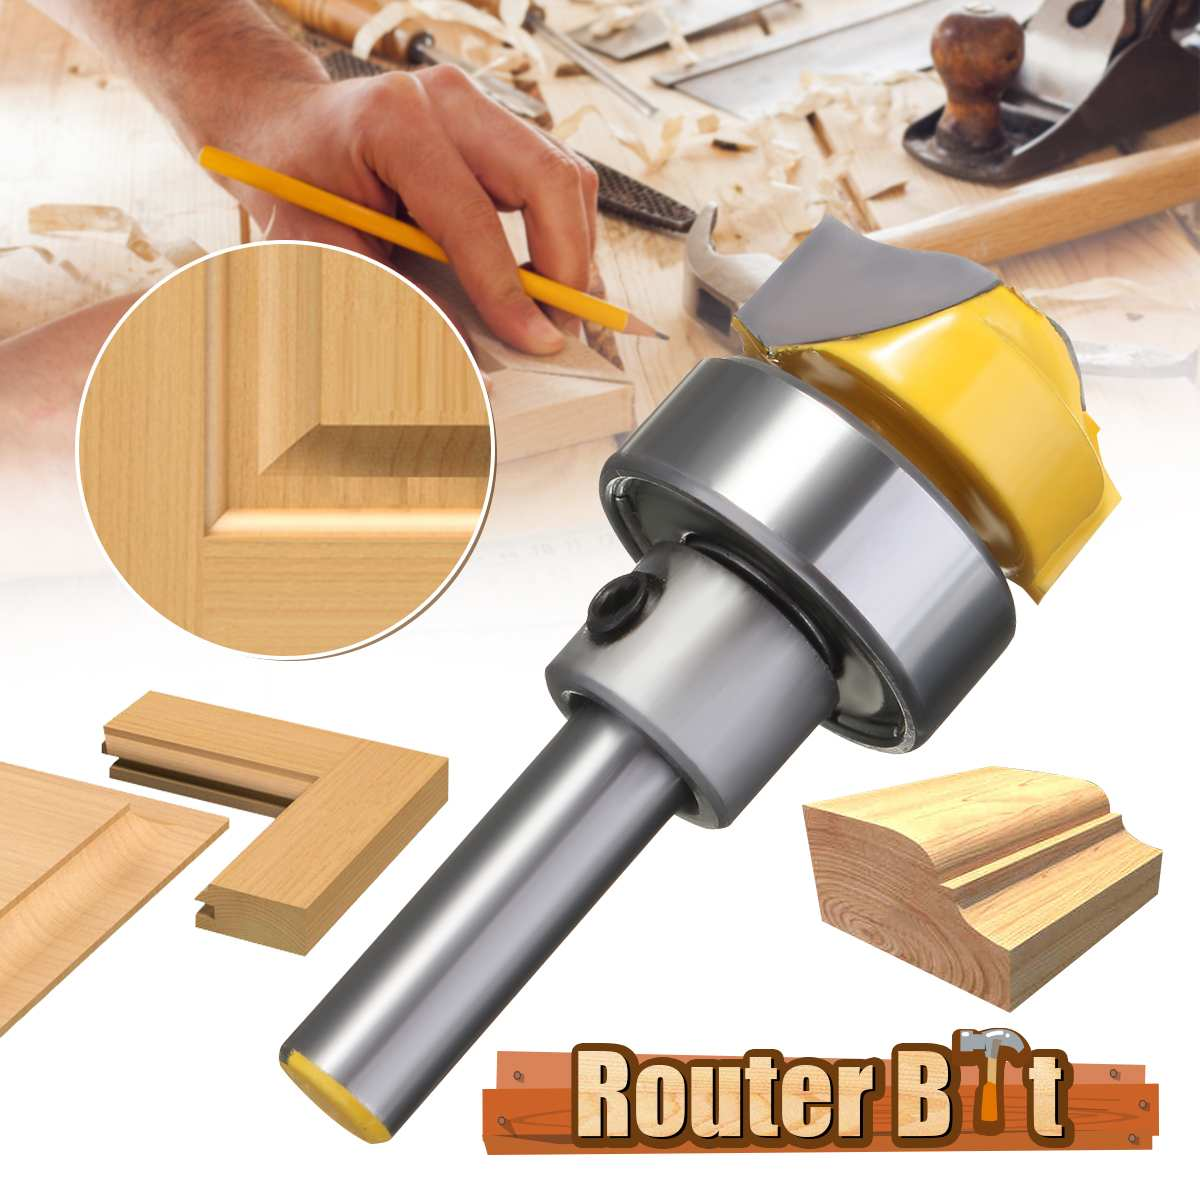 Profiles Groove Template Router Bit 1/4 Shank 2 Flute Handwork Tools For Woodworking Cutter 42mm